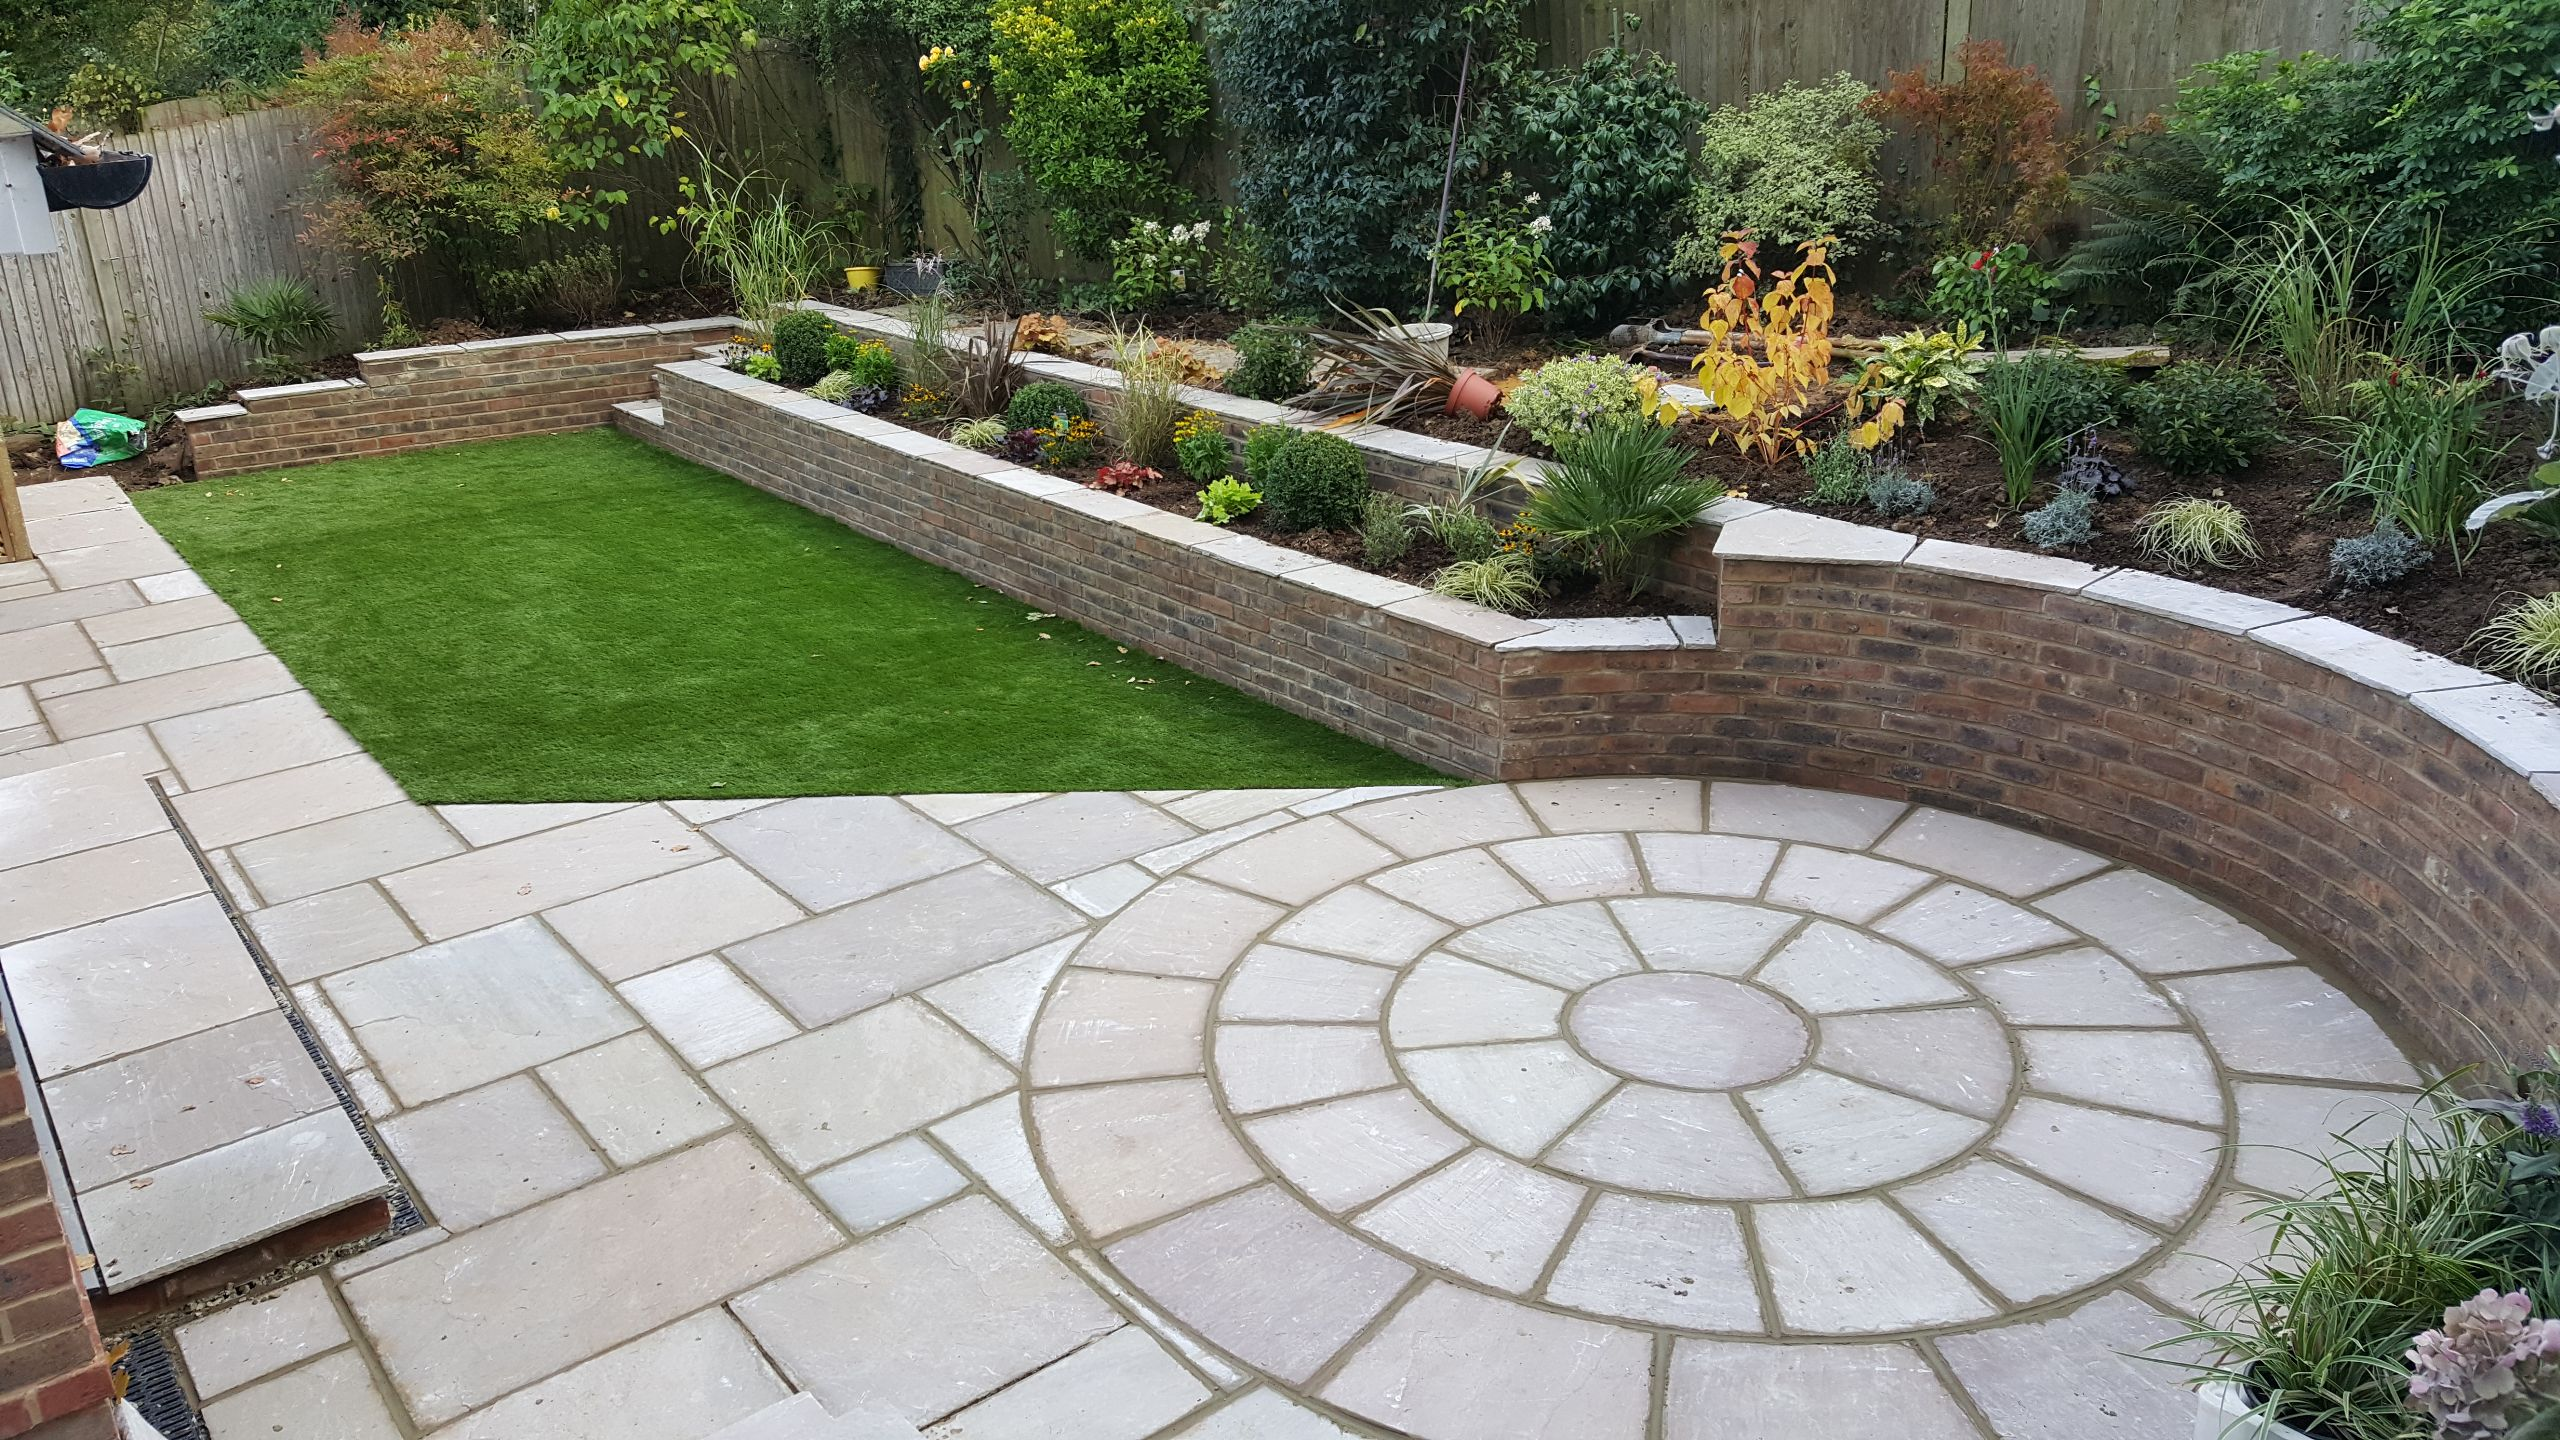 Large sloped garden revitalised and Landscaped in Horsham area